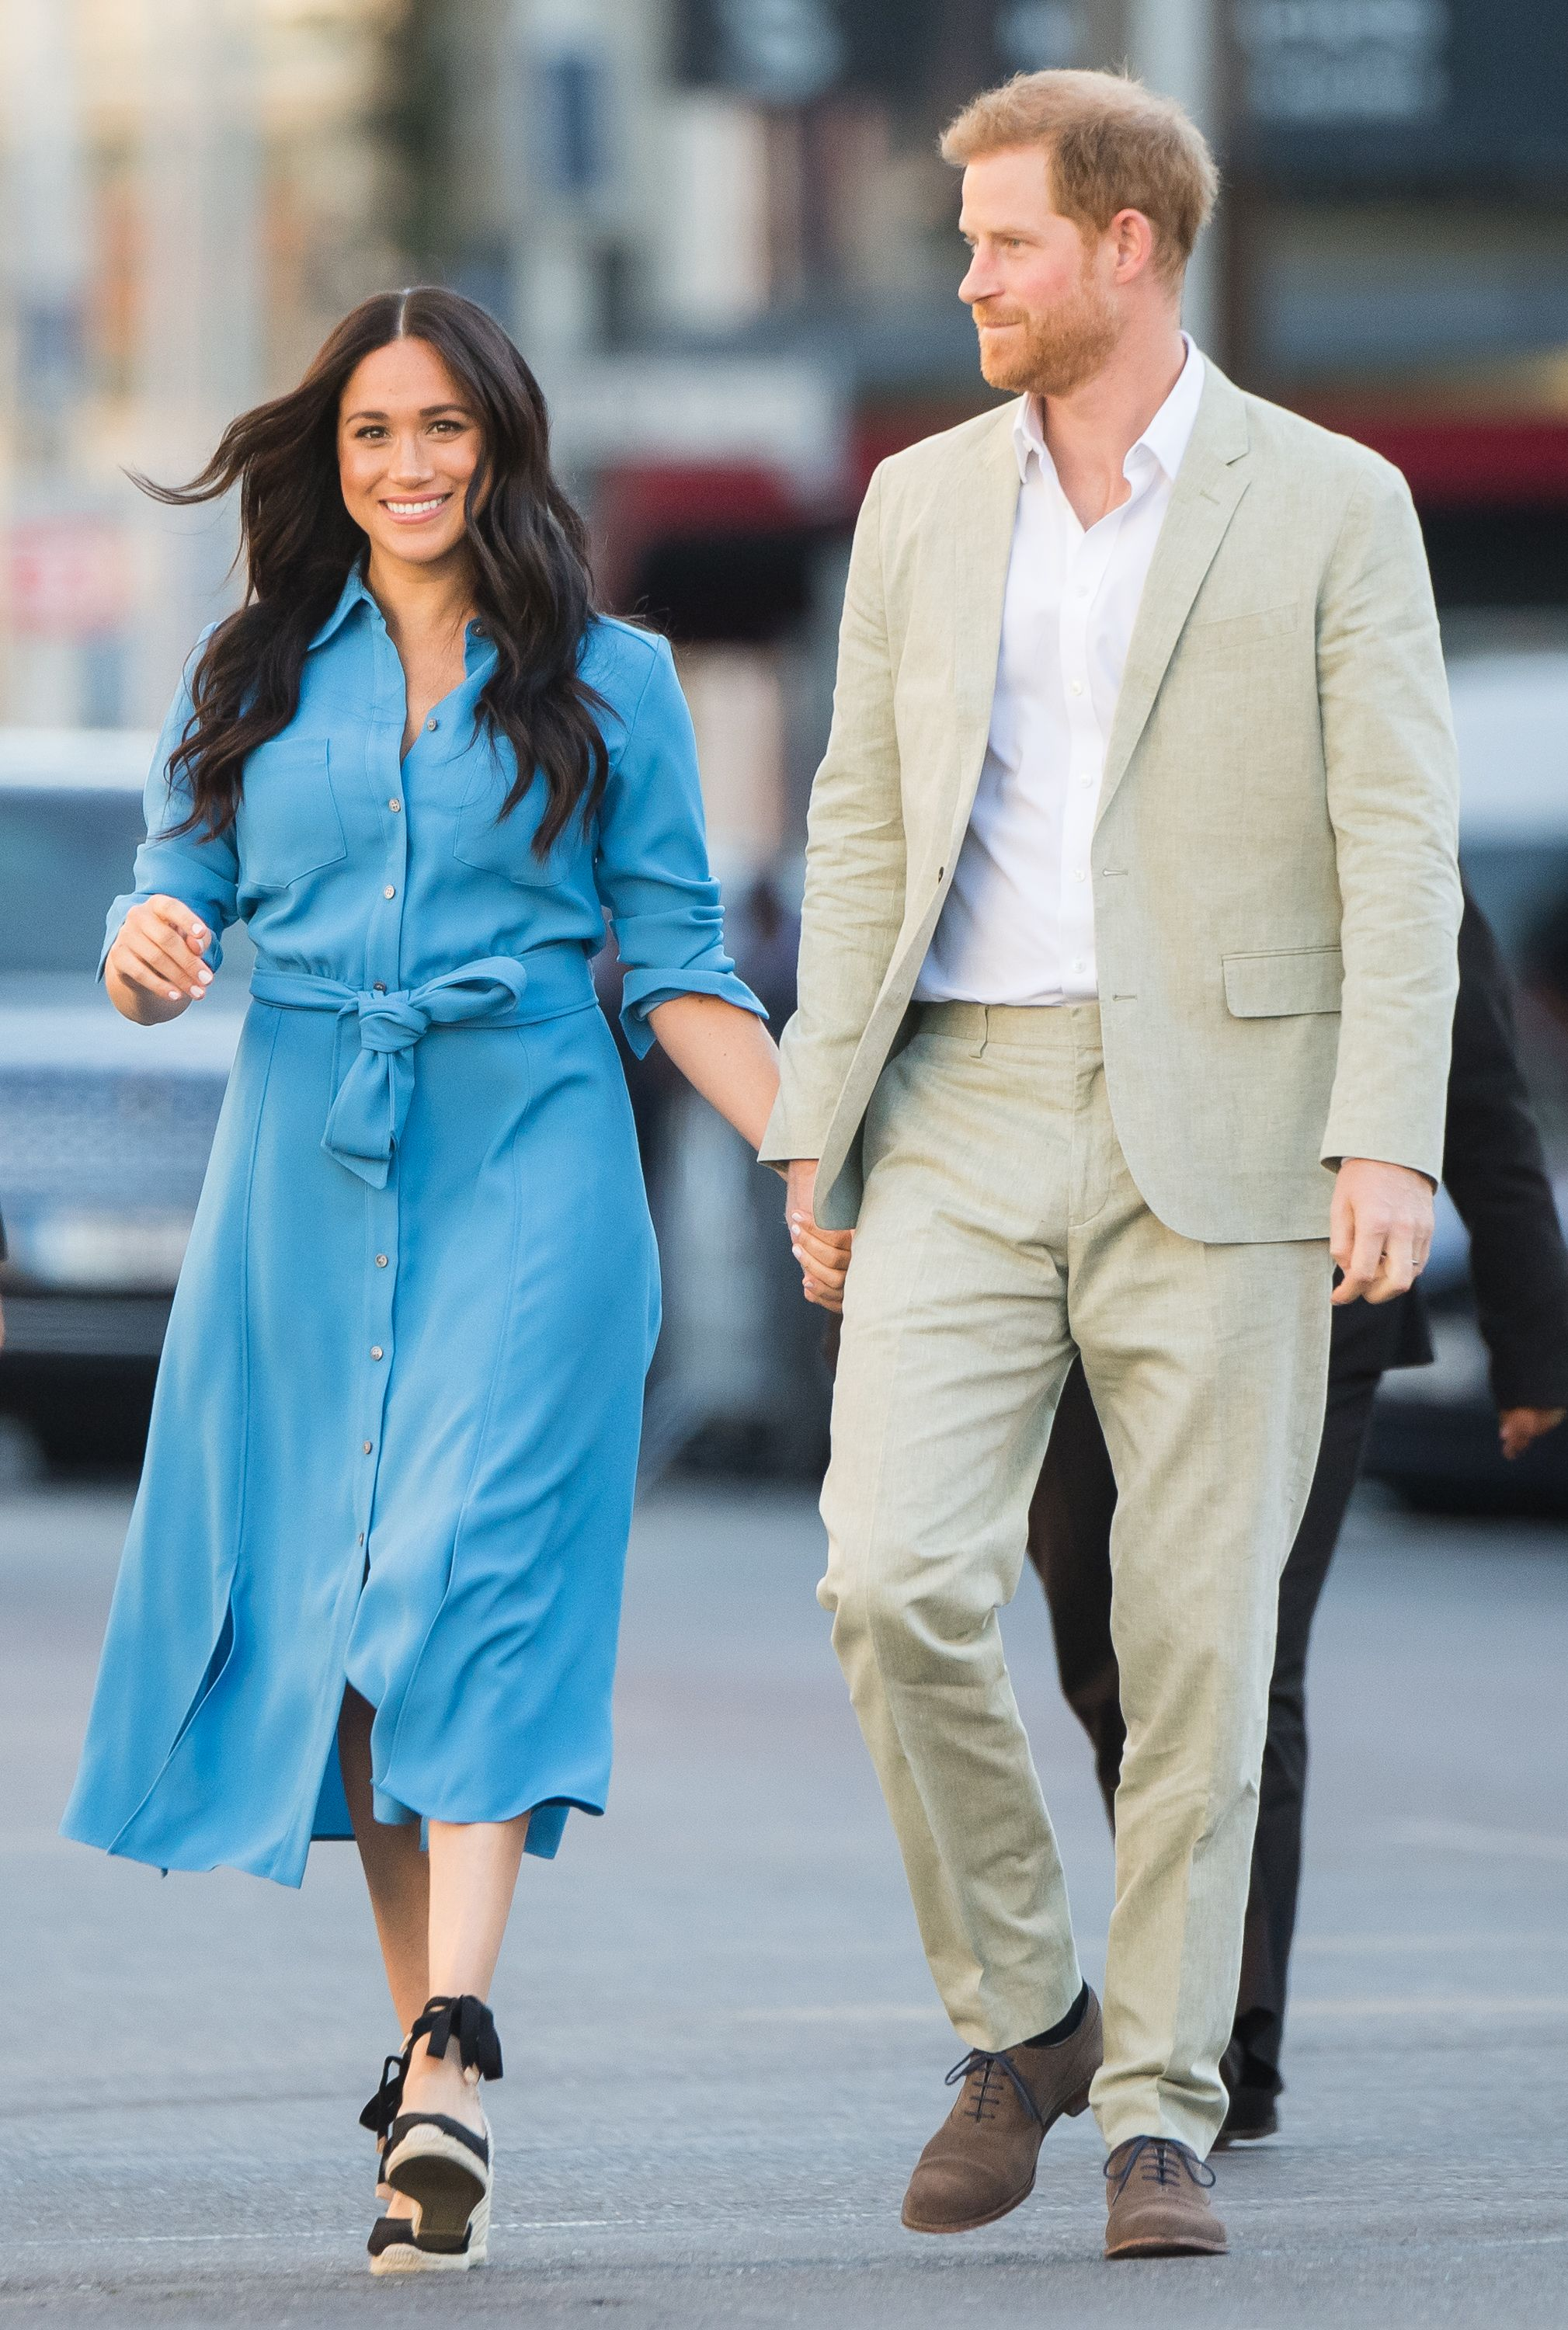 meghan markle style photos of meghan markle s best fashion moments meghan markle style photos of meghan